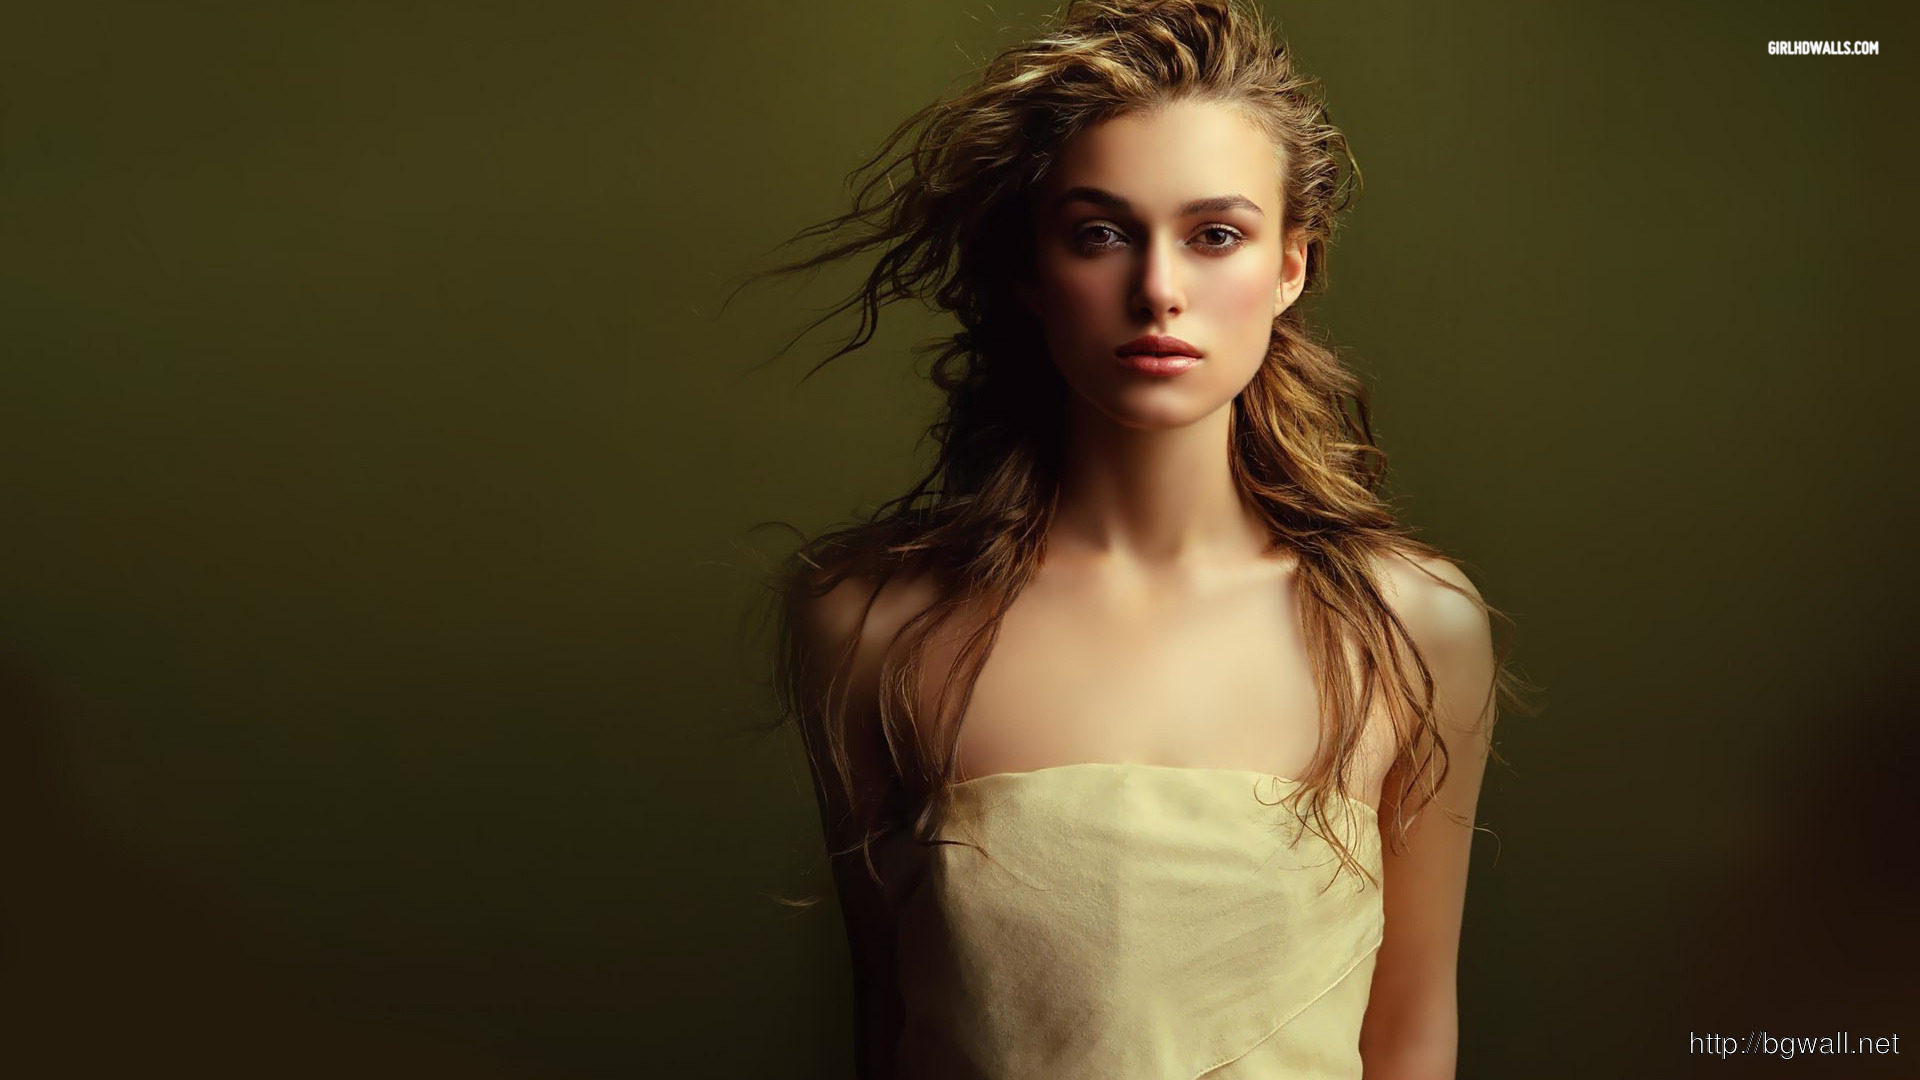 Keira Knightley 1920x1080 Wallpaper Full Size